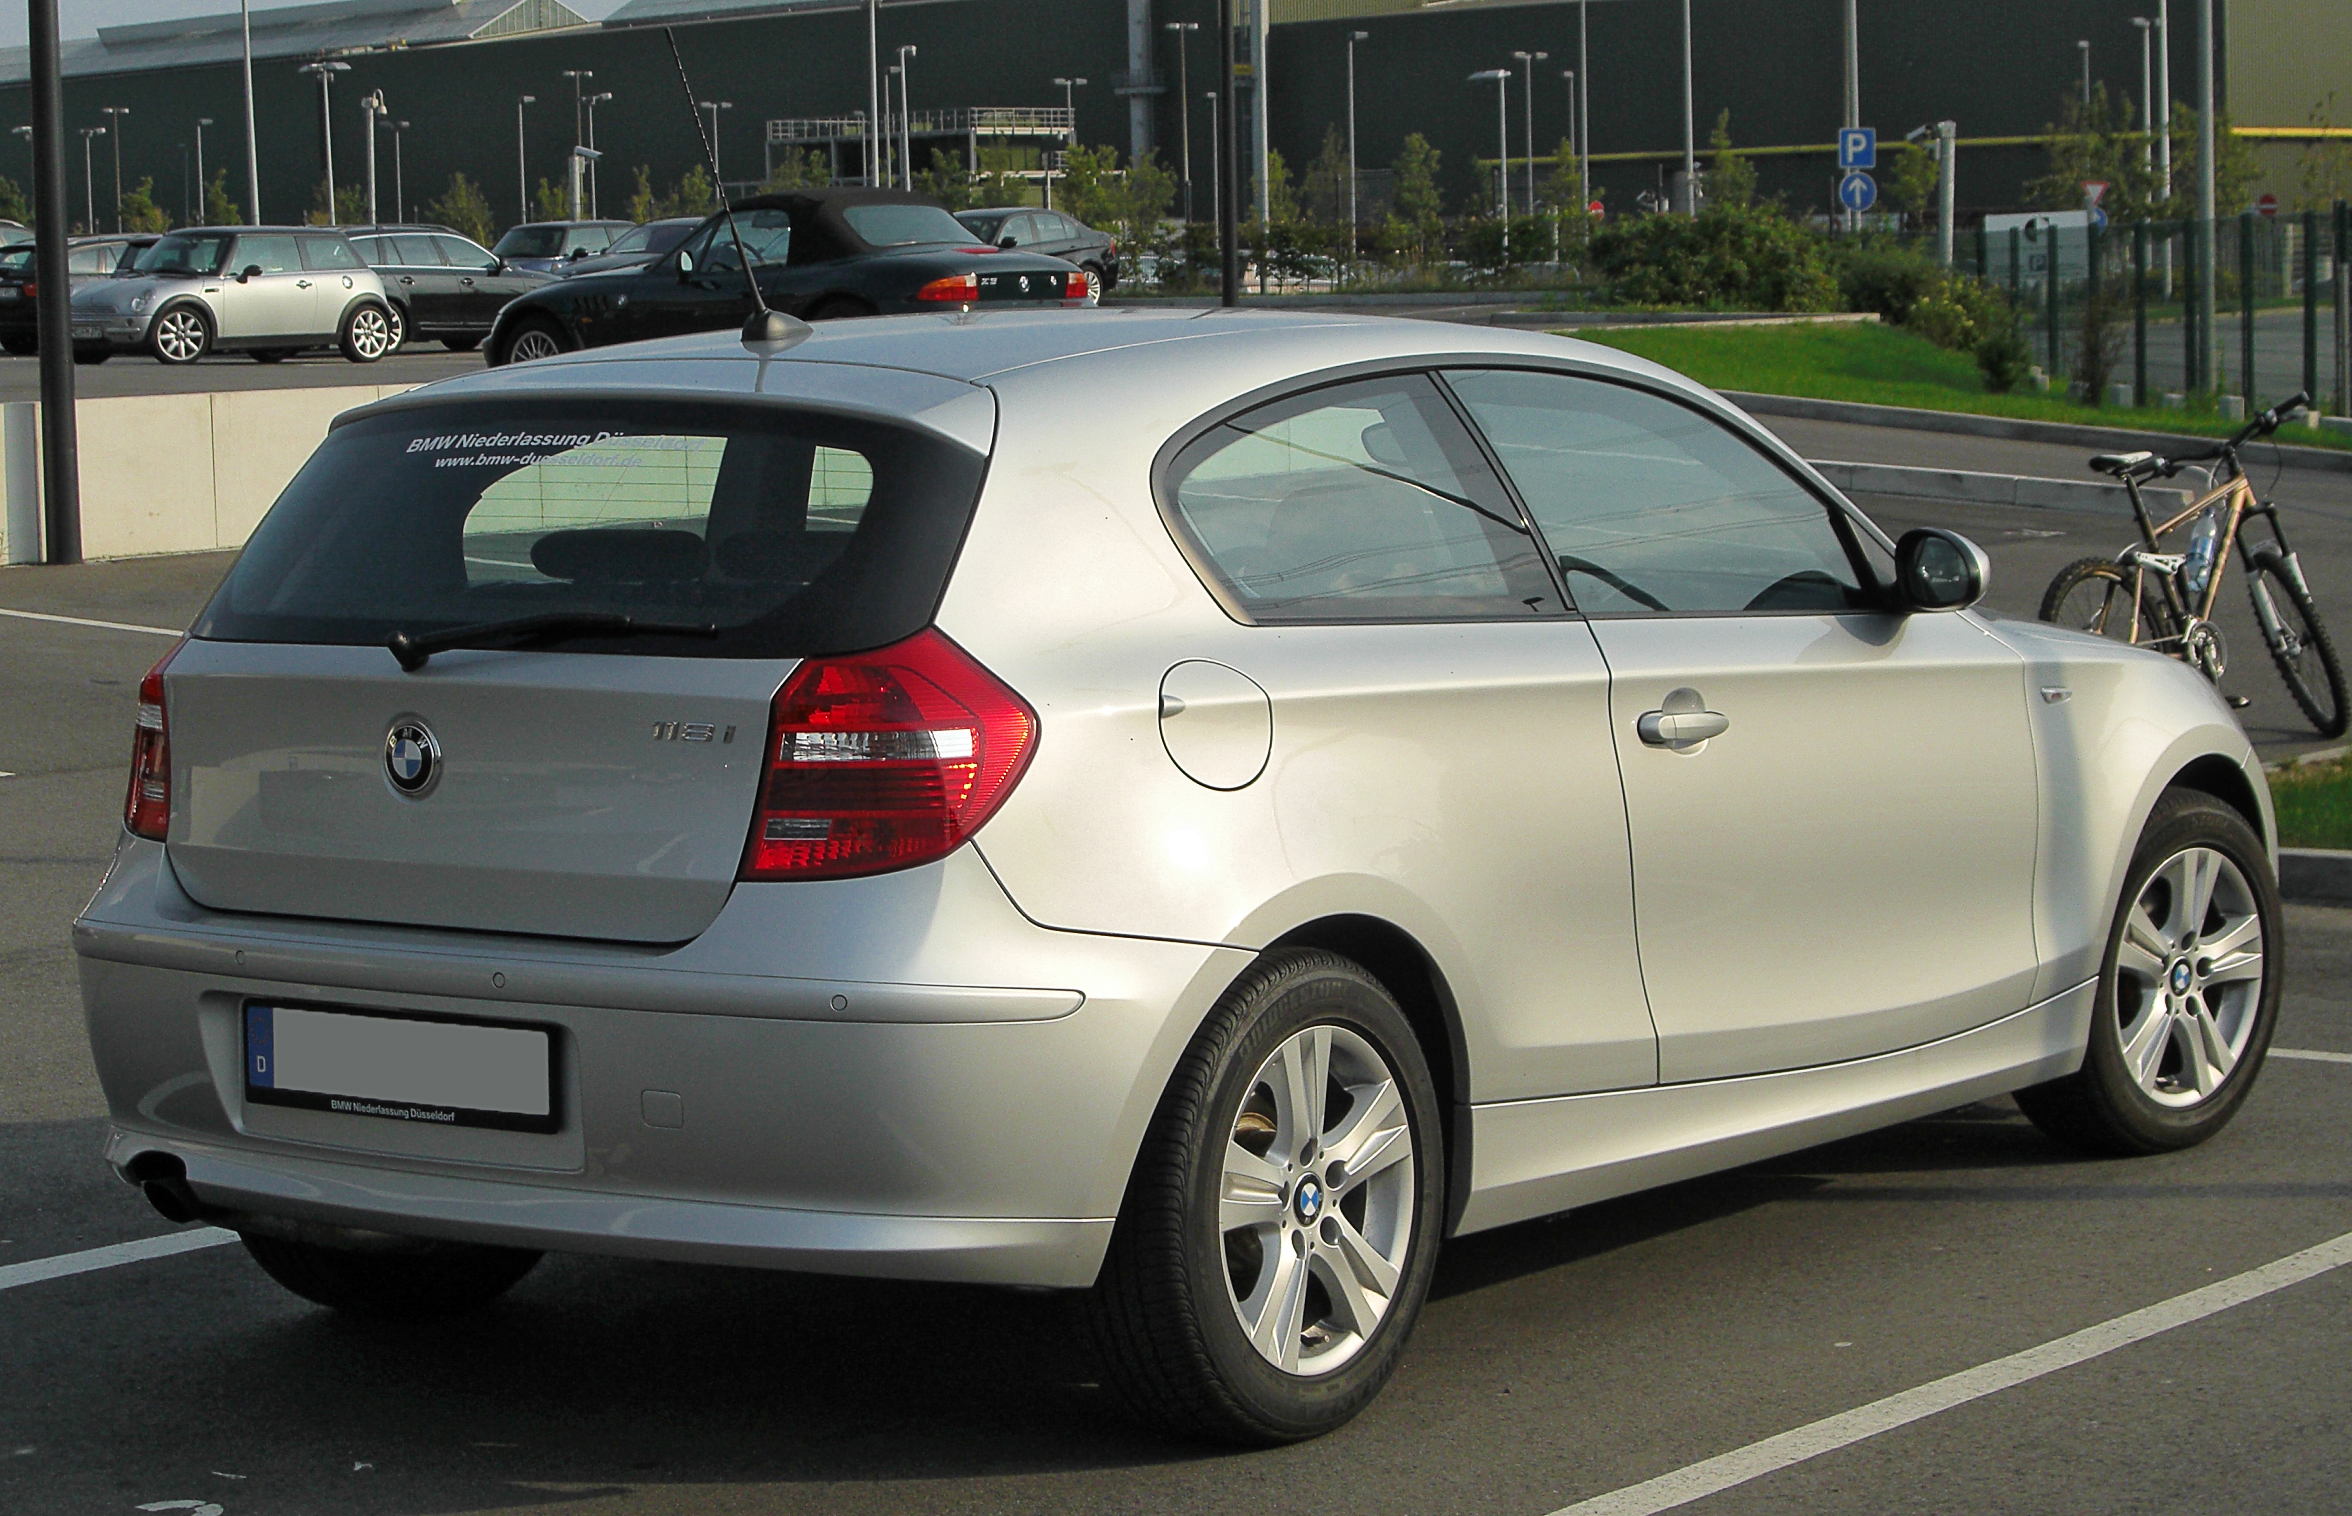 File Bmw 118i E81 Facelift Rear 20100814 Jpg Wikimedia